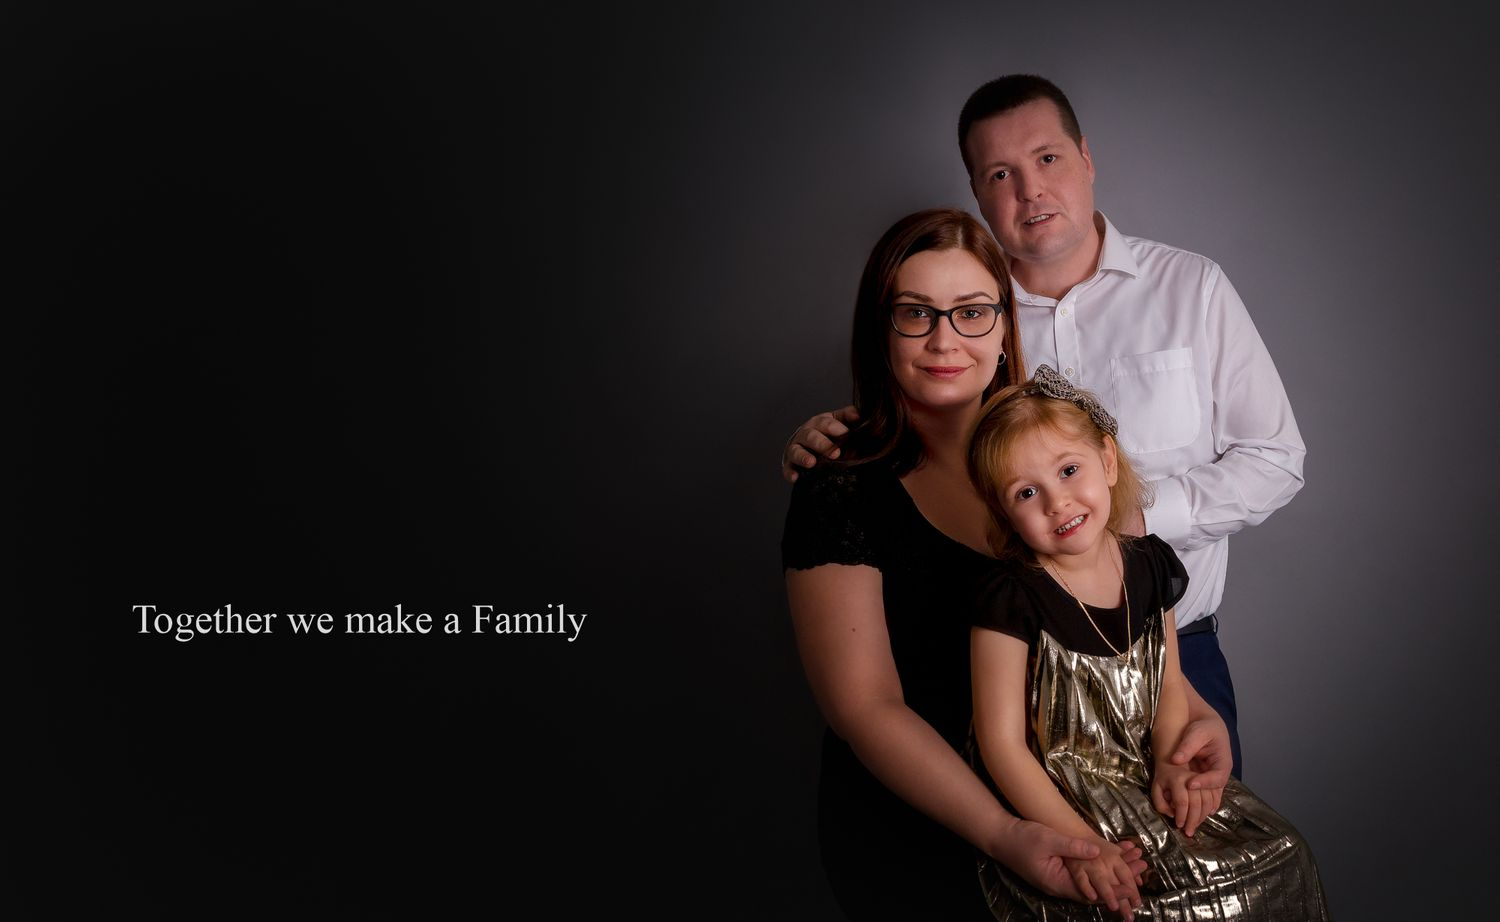 Kent_photographer_wedding_family_portrait_event_photographer